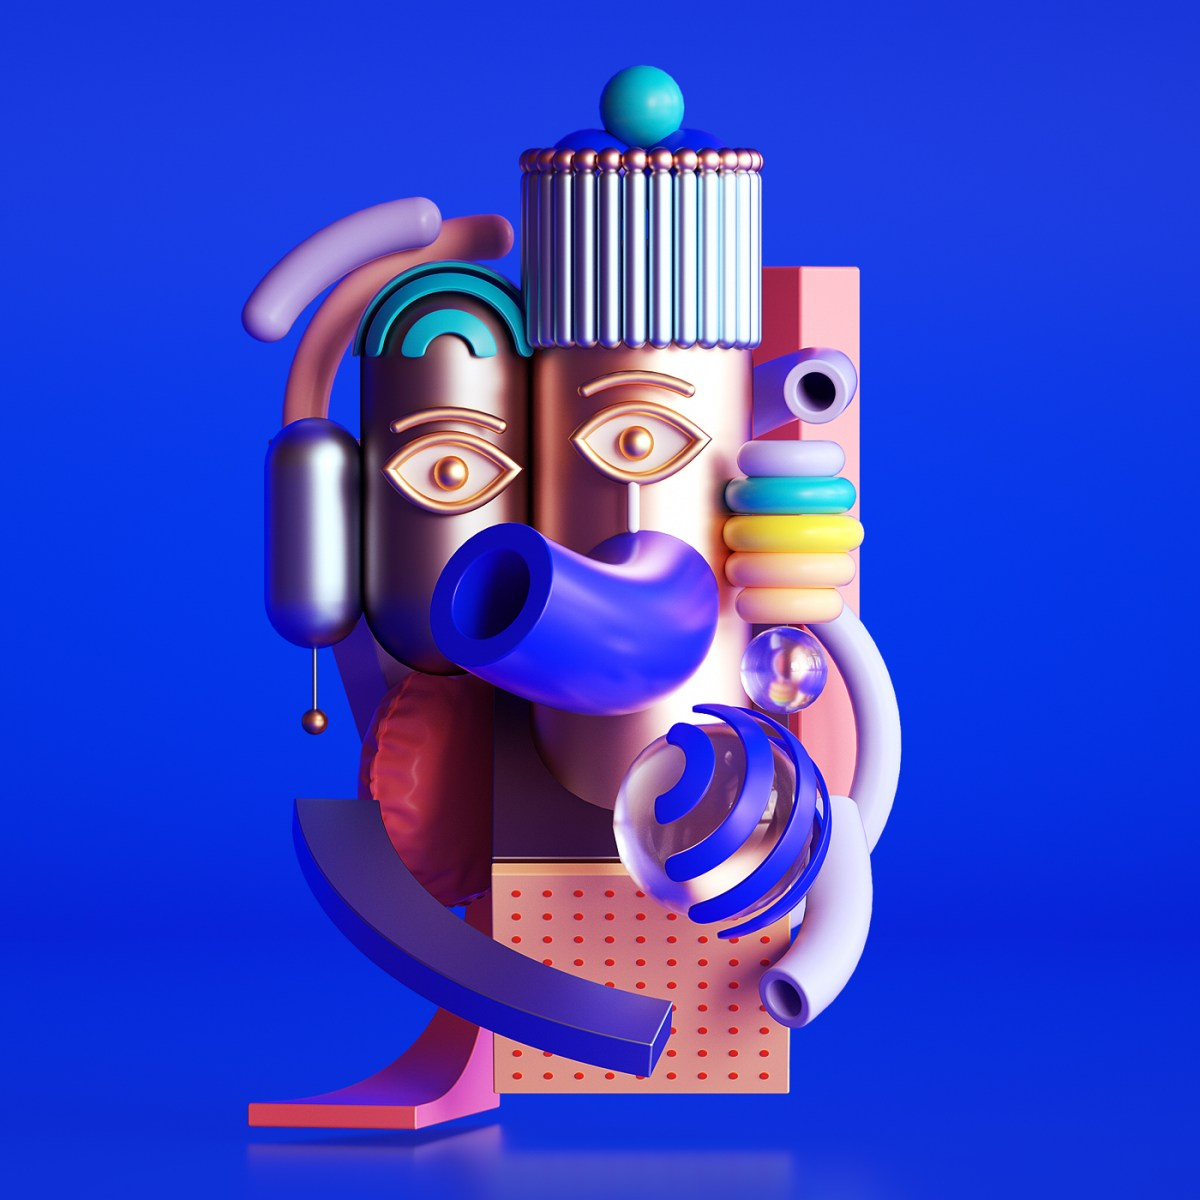 Fun, Bright 3D Character Design Inspired by Picasso